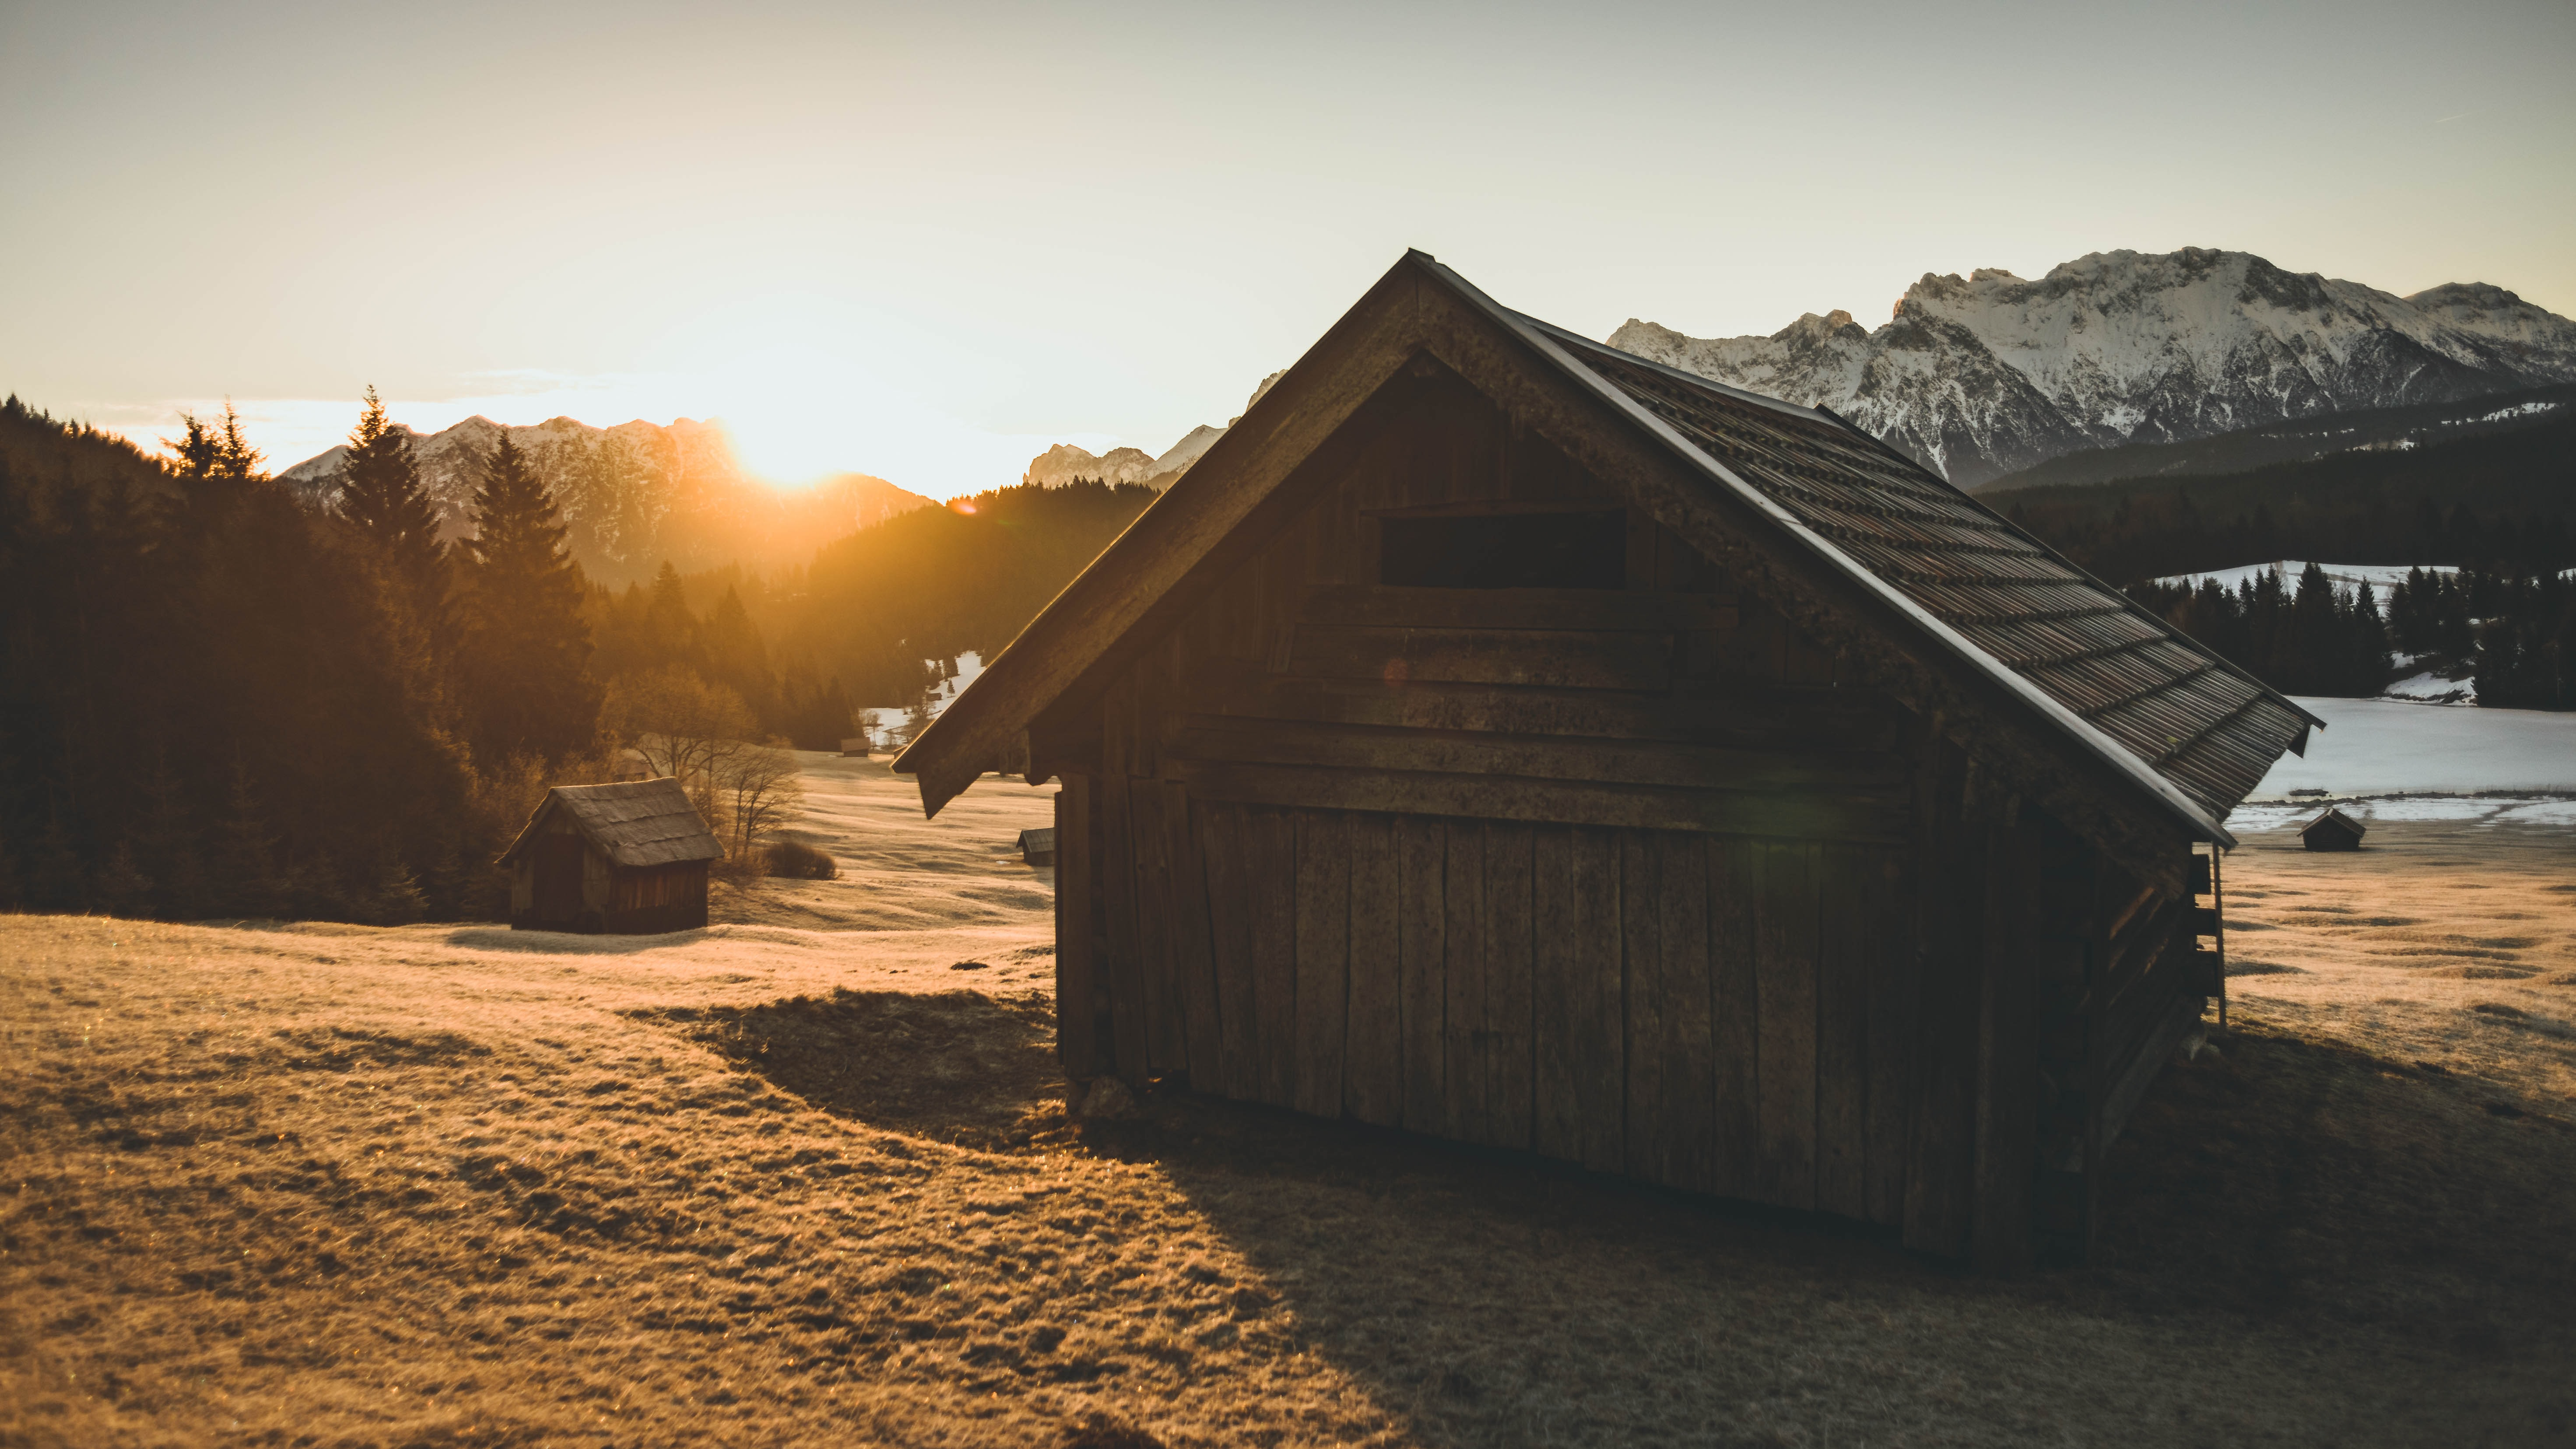 landscape photo of wooden house during sunset